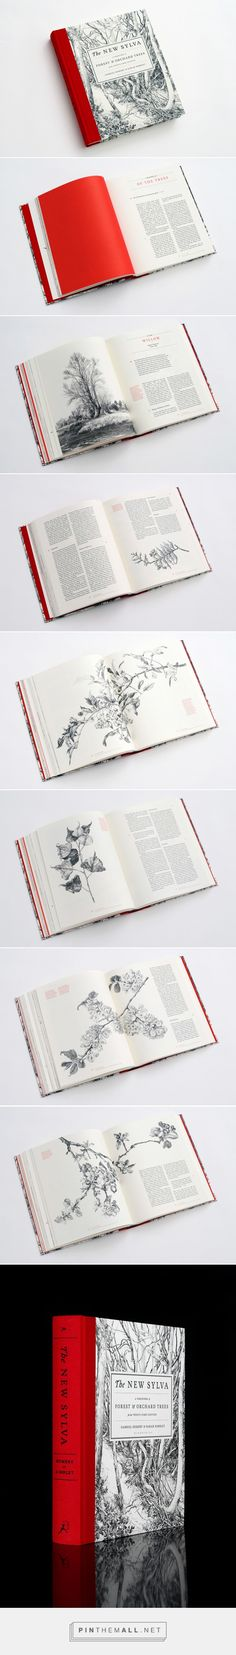 Book Design Inspiration: The New Sylva - Celebrating the UK's Forests and Trees - created via https://pinthemall.net